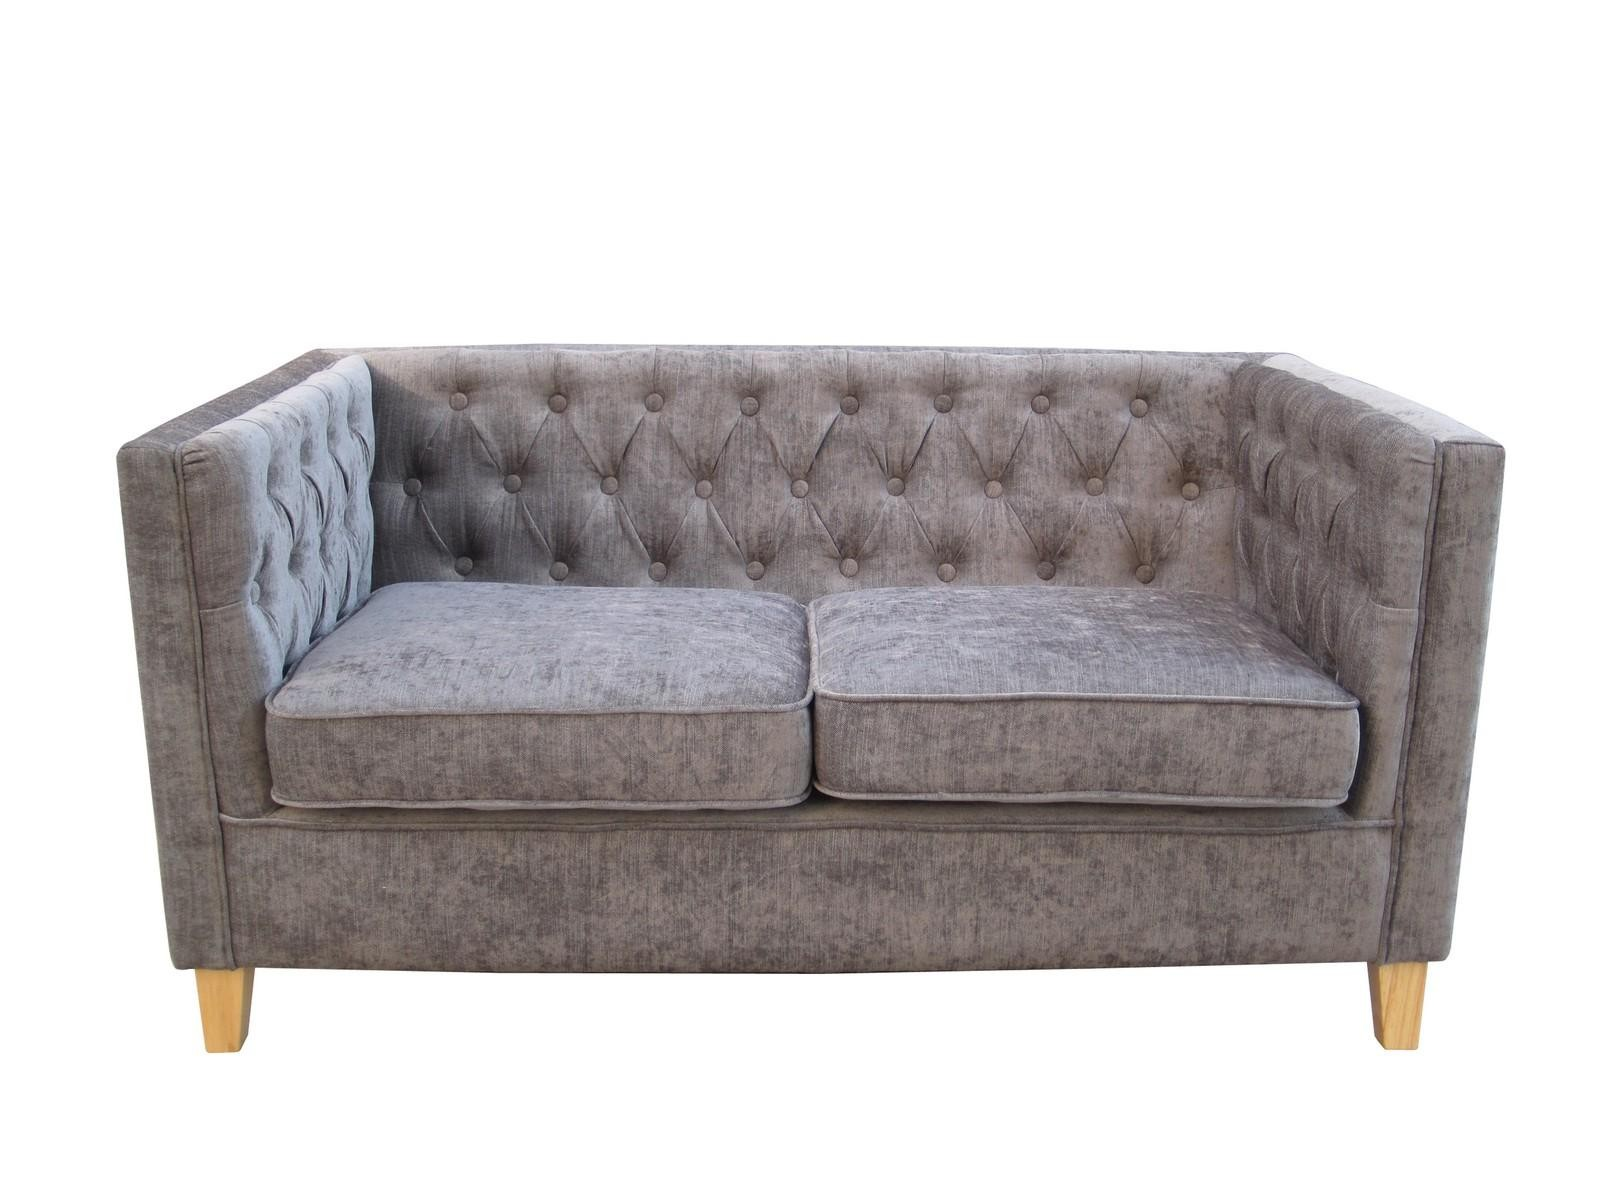 York 2 Seater Grey Chenille Style Fabric Sofa Free Delivery - Lydia 2 Seater Sofa